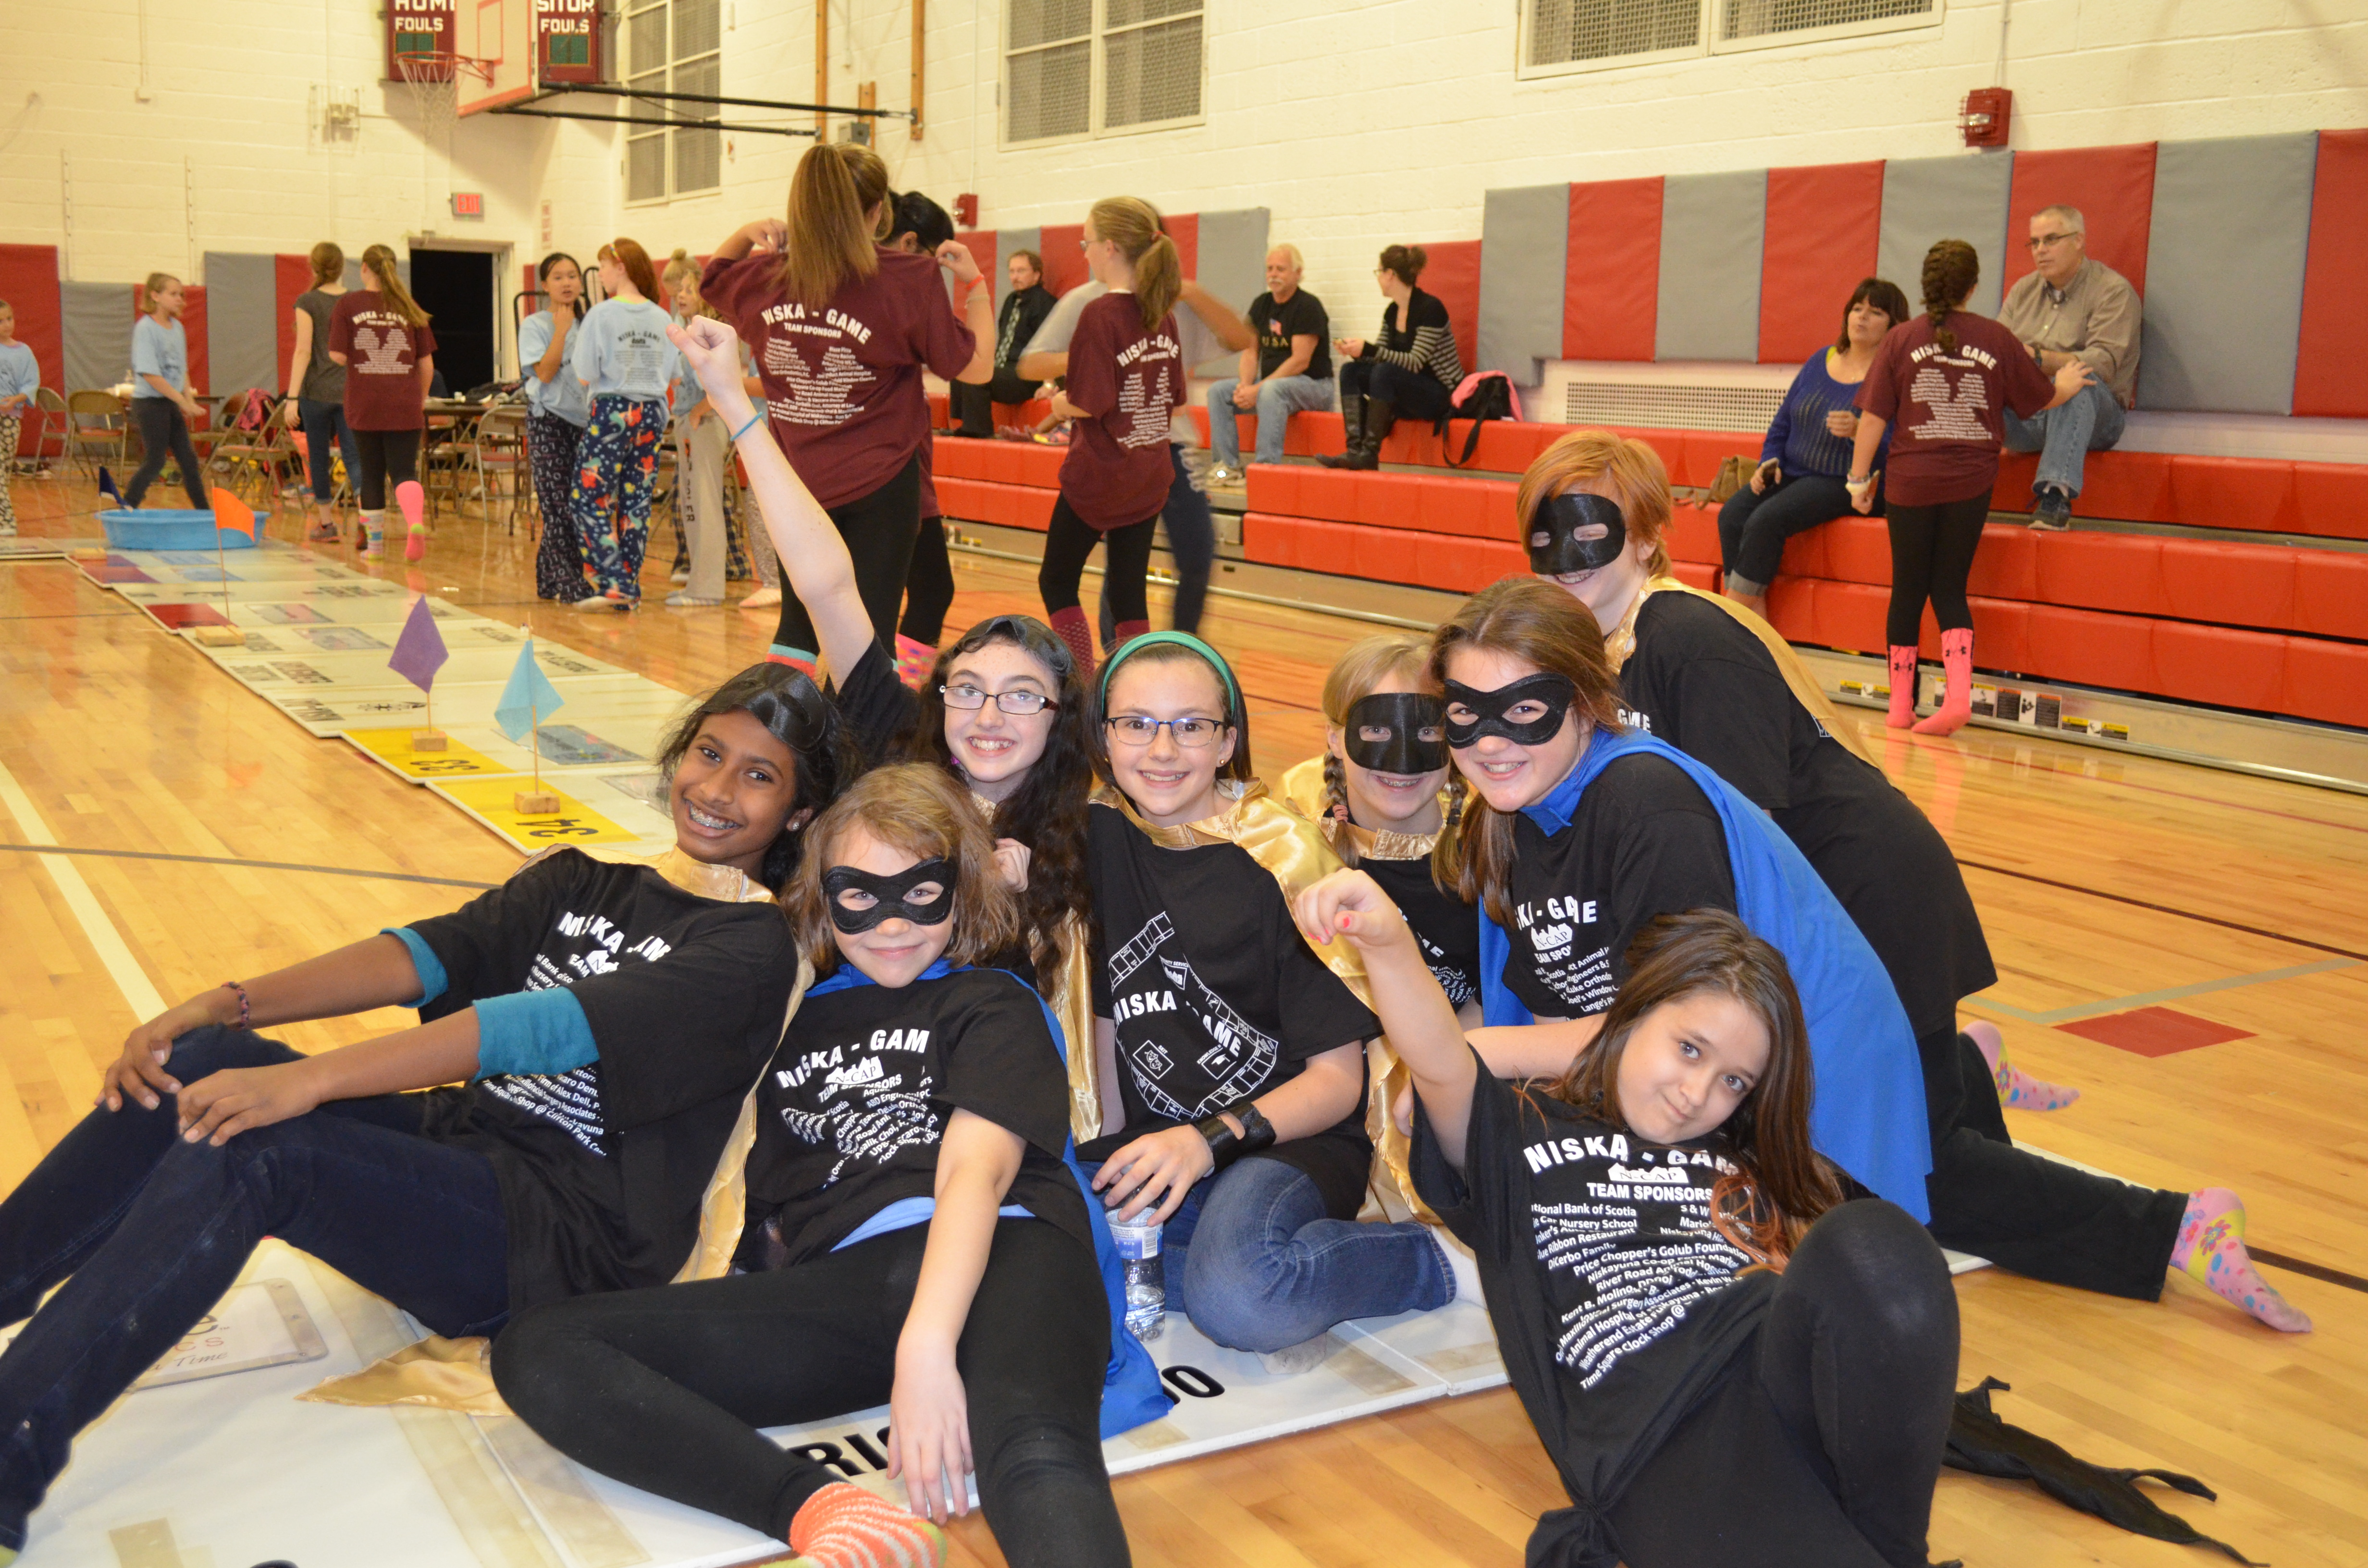 Niska-Game provides a safe and fun experience for our Middle School children.